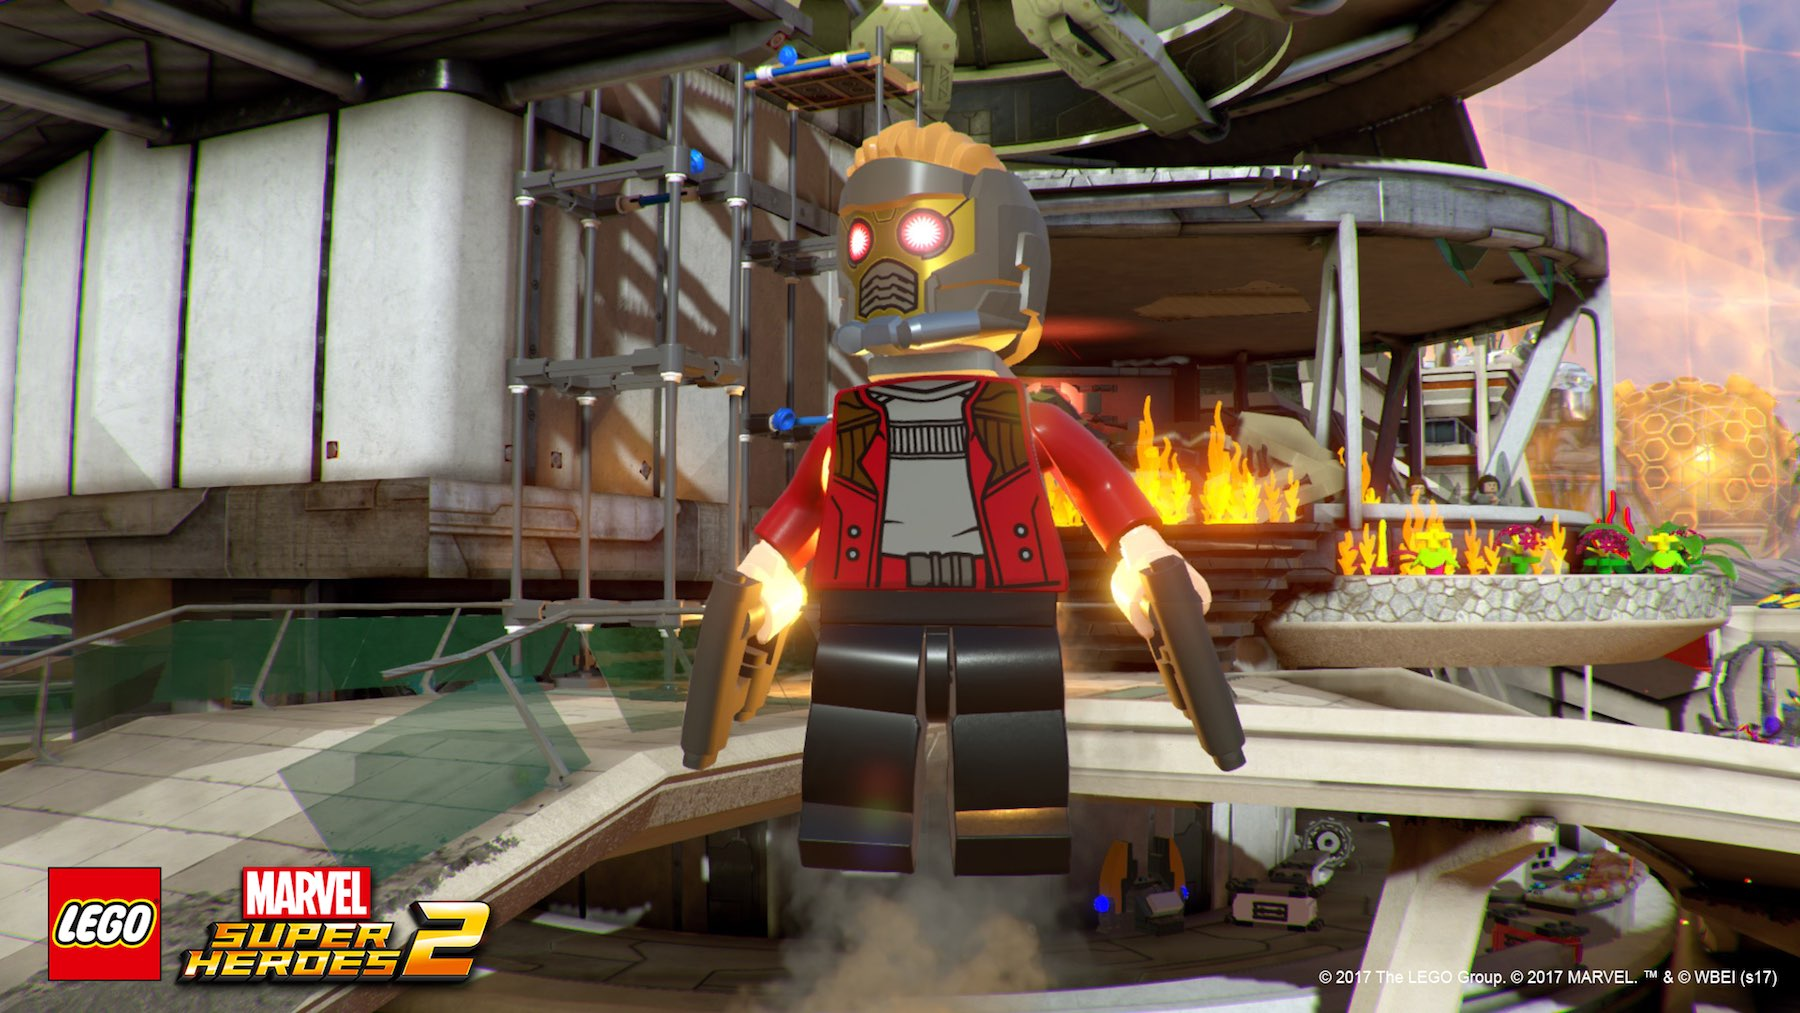 Lego Marvel Super Heroes 2 Brings an All-new Trailer and Details